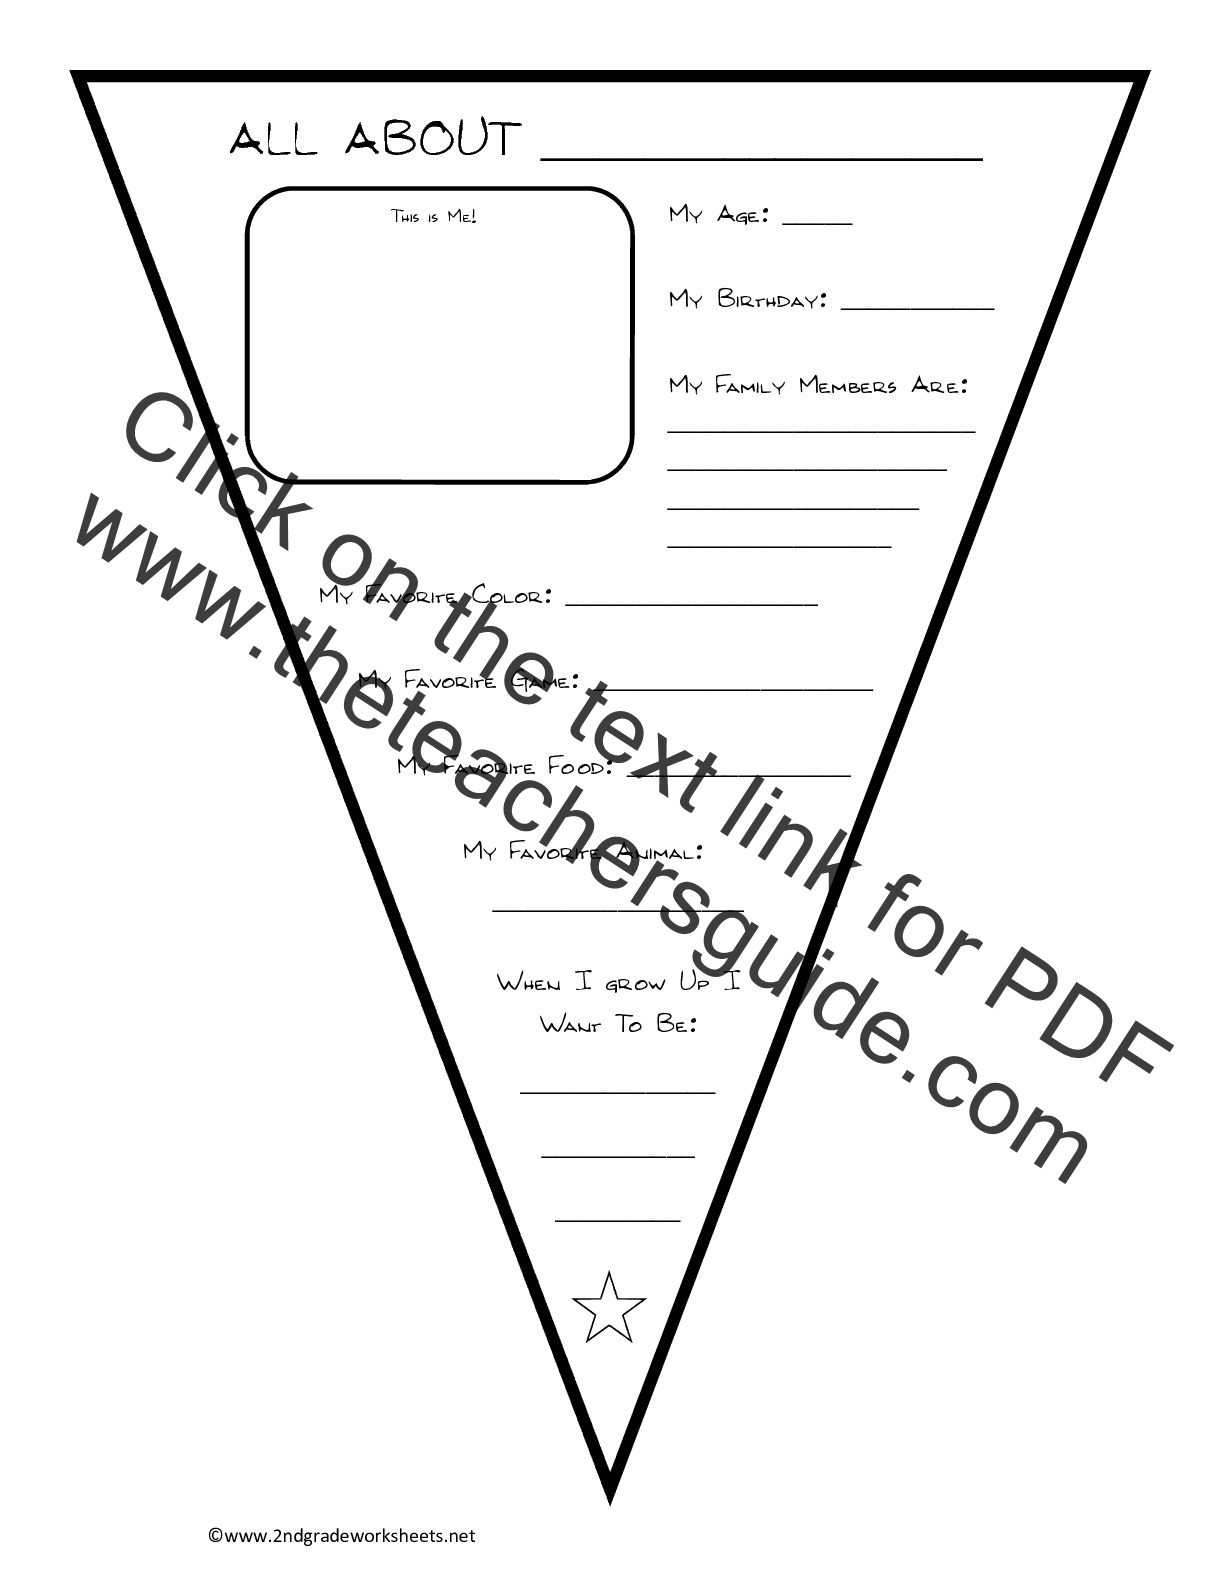 photograph regarding All About Me Poster Printable identify No cost Back again in the direction of College Worksheets and Printouts